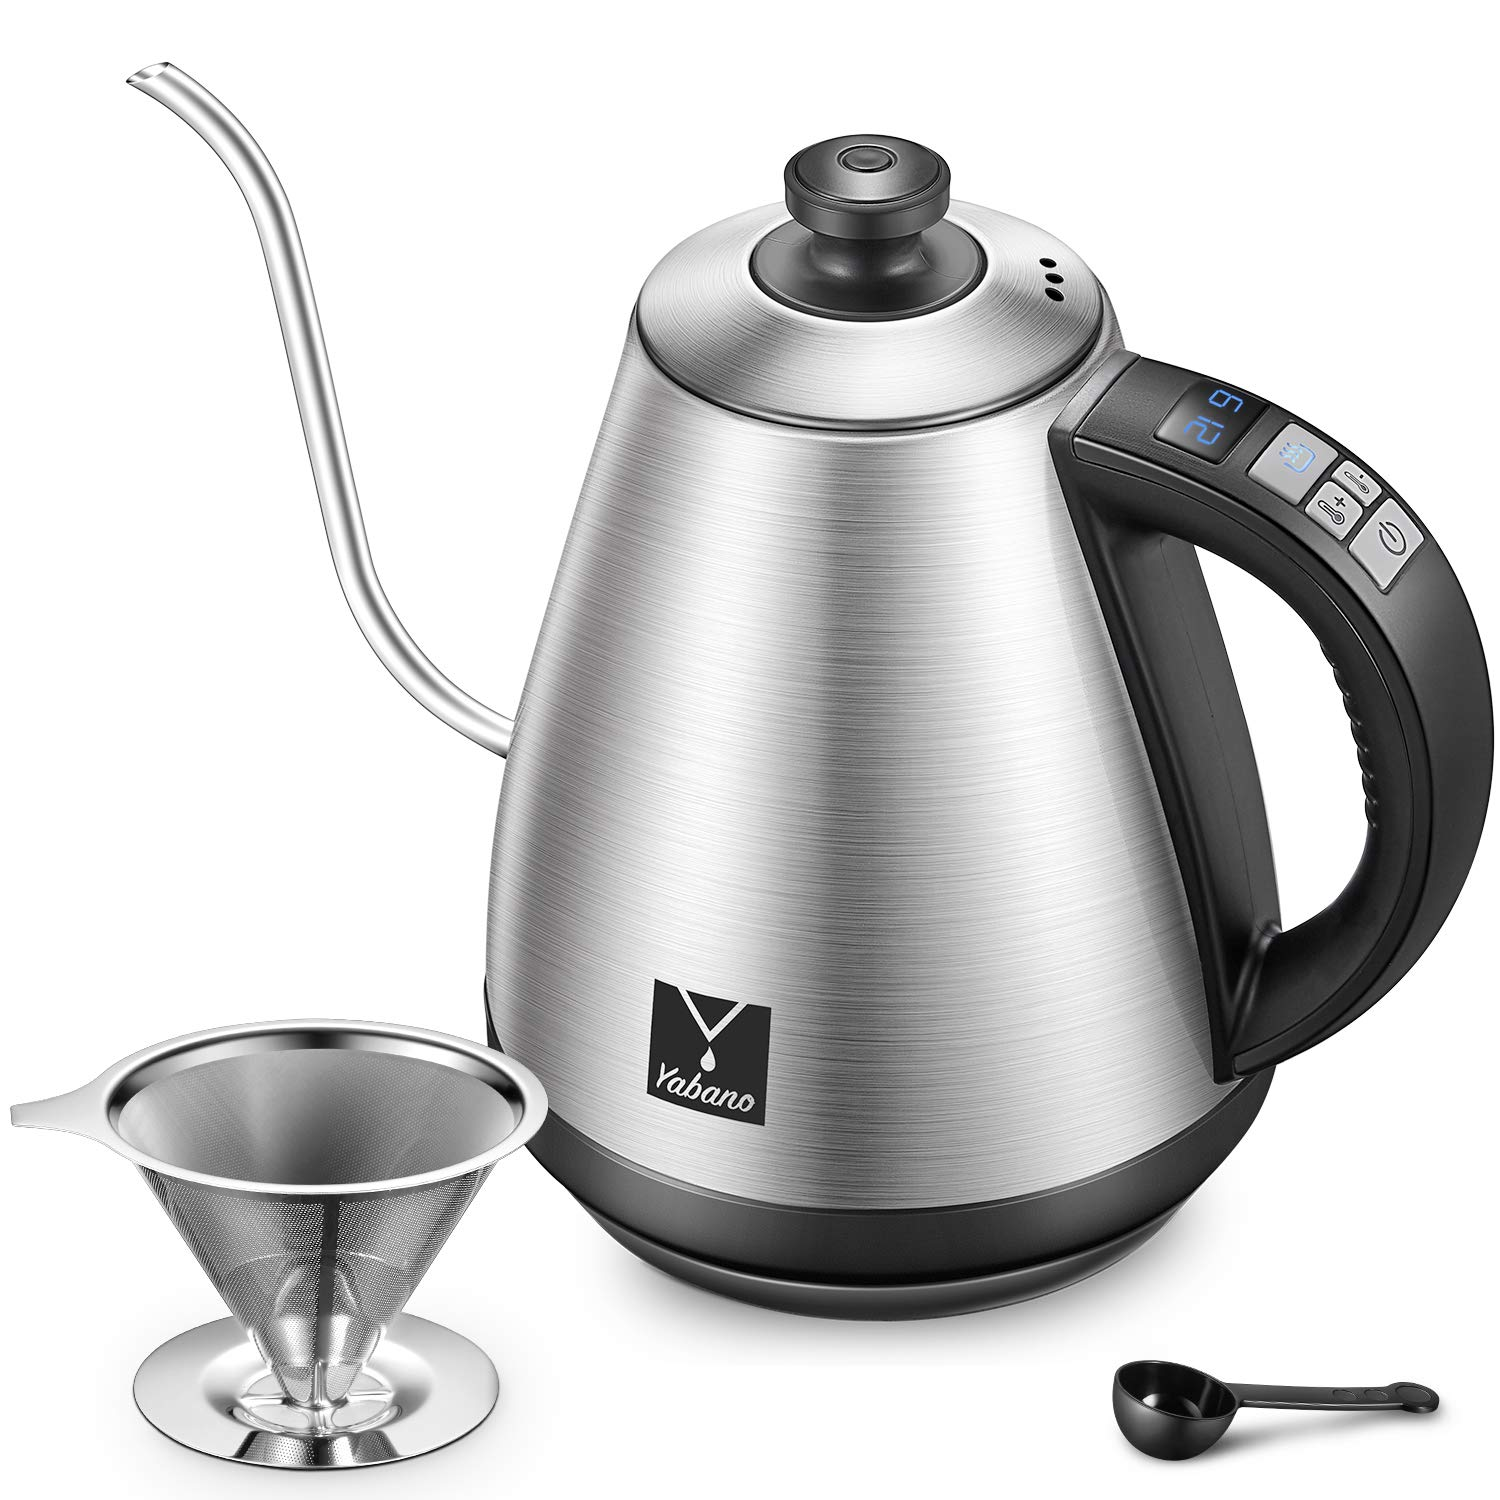 Electric Kettle, Yabano Gooseneck Pour Over Coffee Kettle With Coffee Filter, Digital Variable Temperature Control Kettle for Coffee and Tea, Stainless Steel, Auto Shut-off and Keep Warm